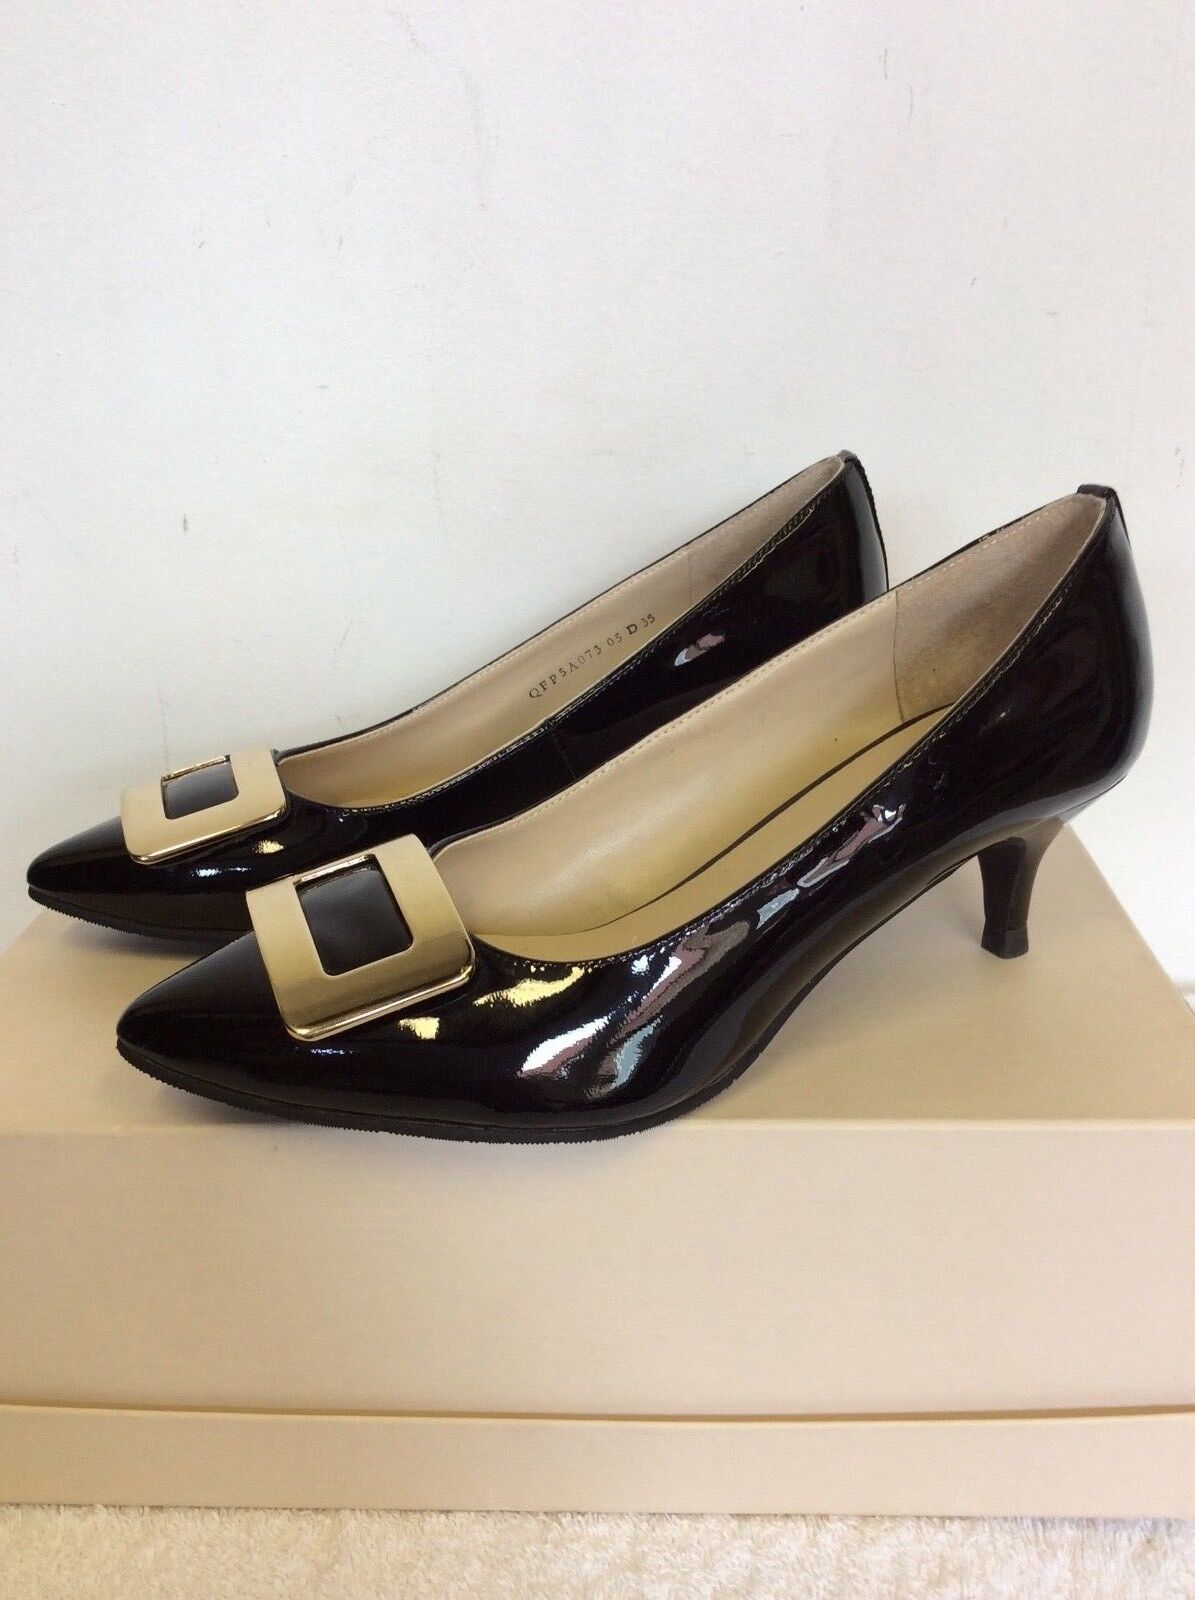 BRAND NEW LEATHER J WEST BLACK PATENT LEATHER NEW & GOLD BUCKLE TRIM HEELS SIZE 3/35 dc3a9a